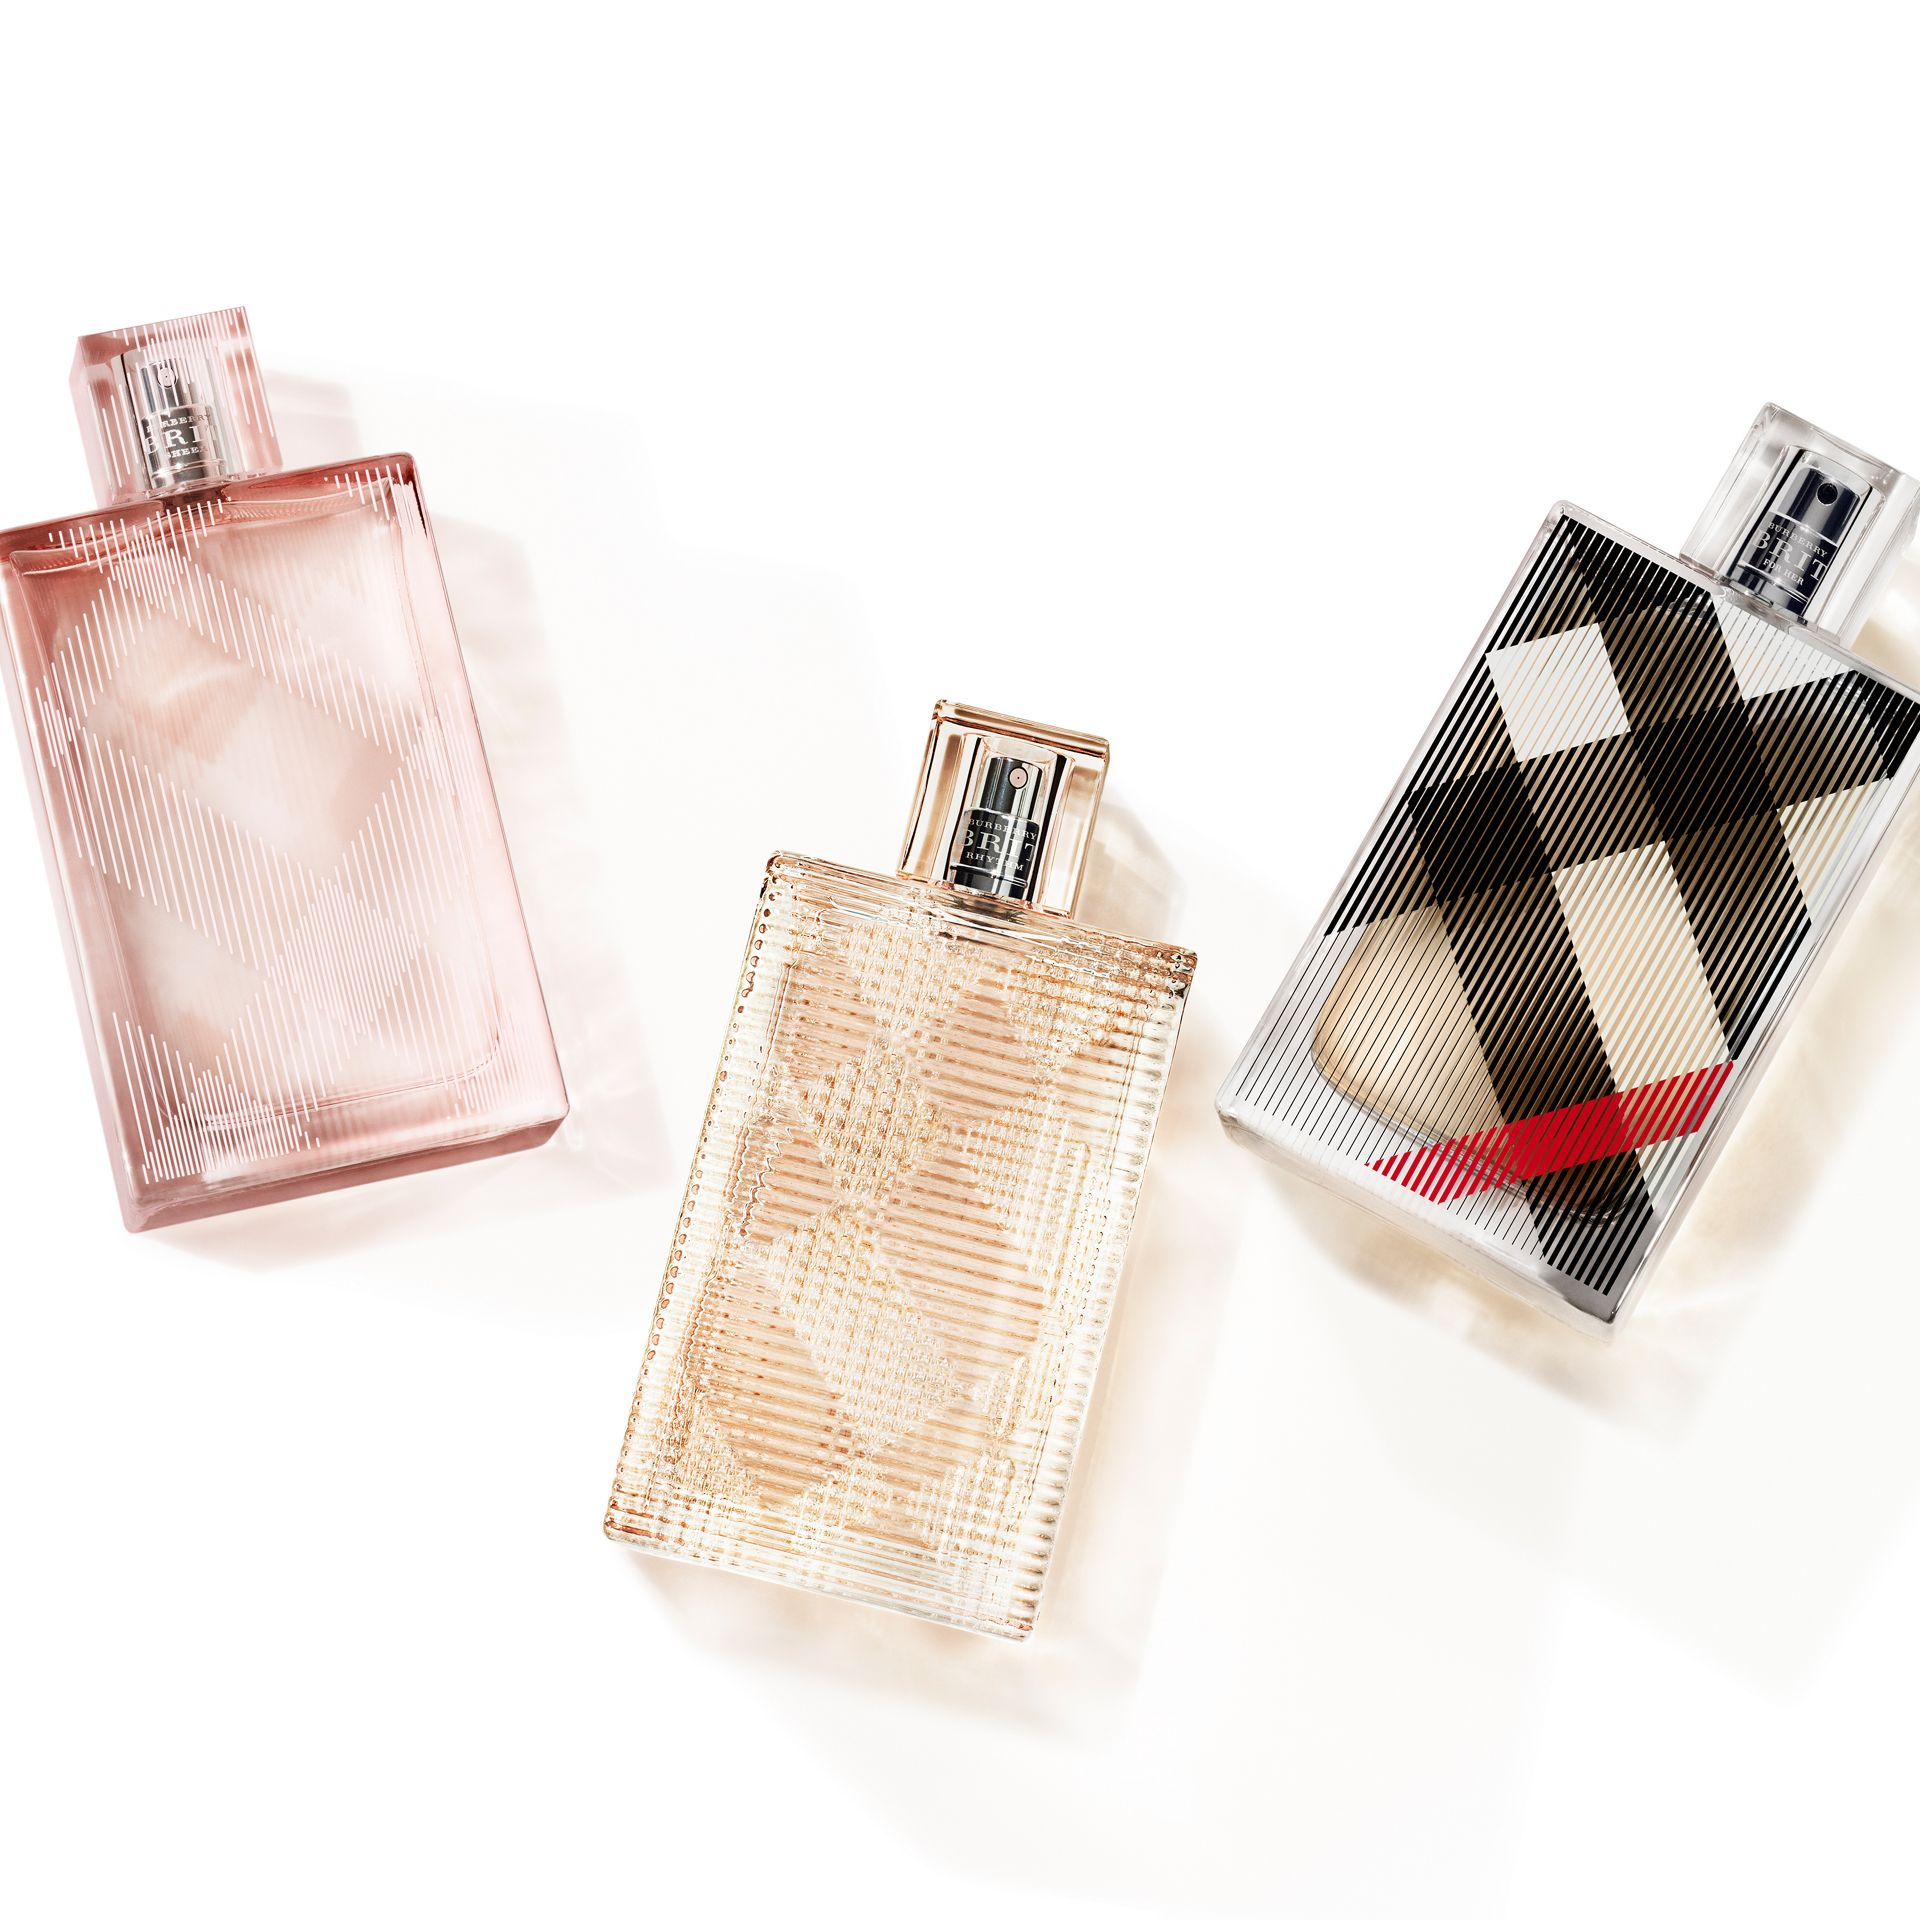 Burberry Brit For Her 香水 30ml - 圖庫照片 3